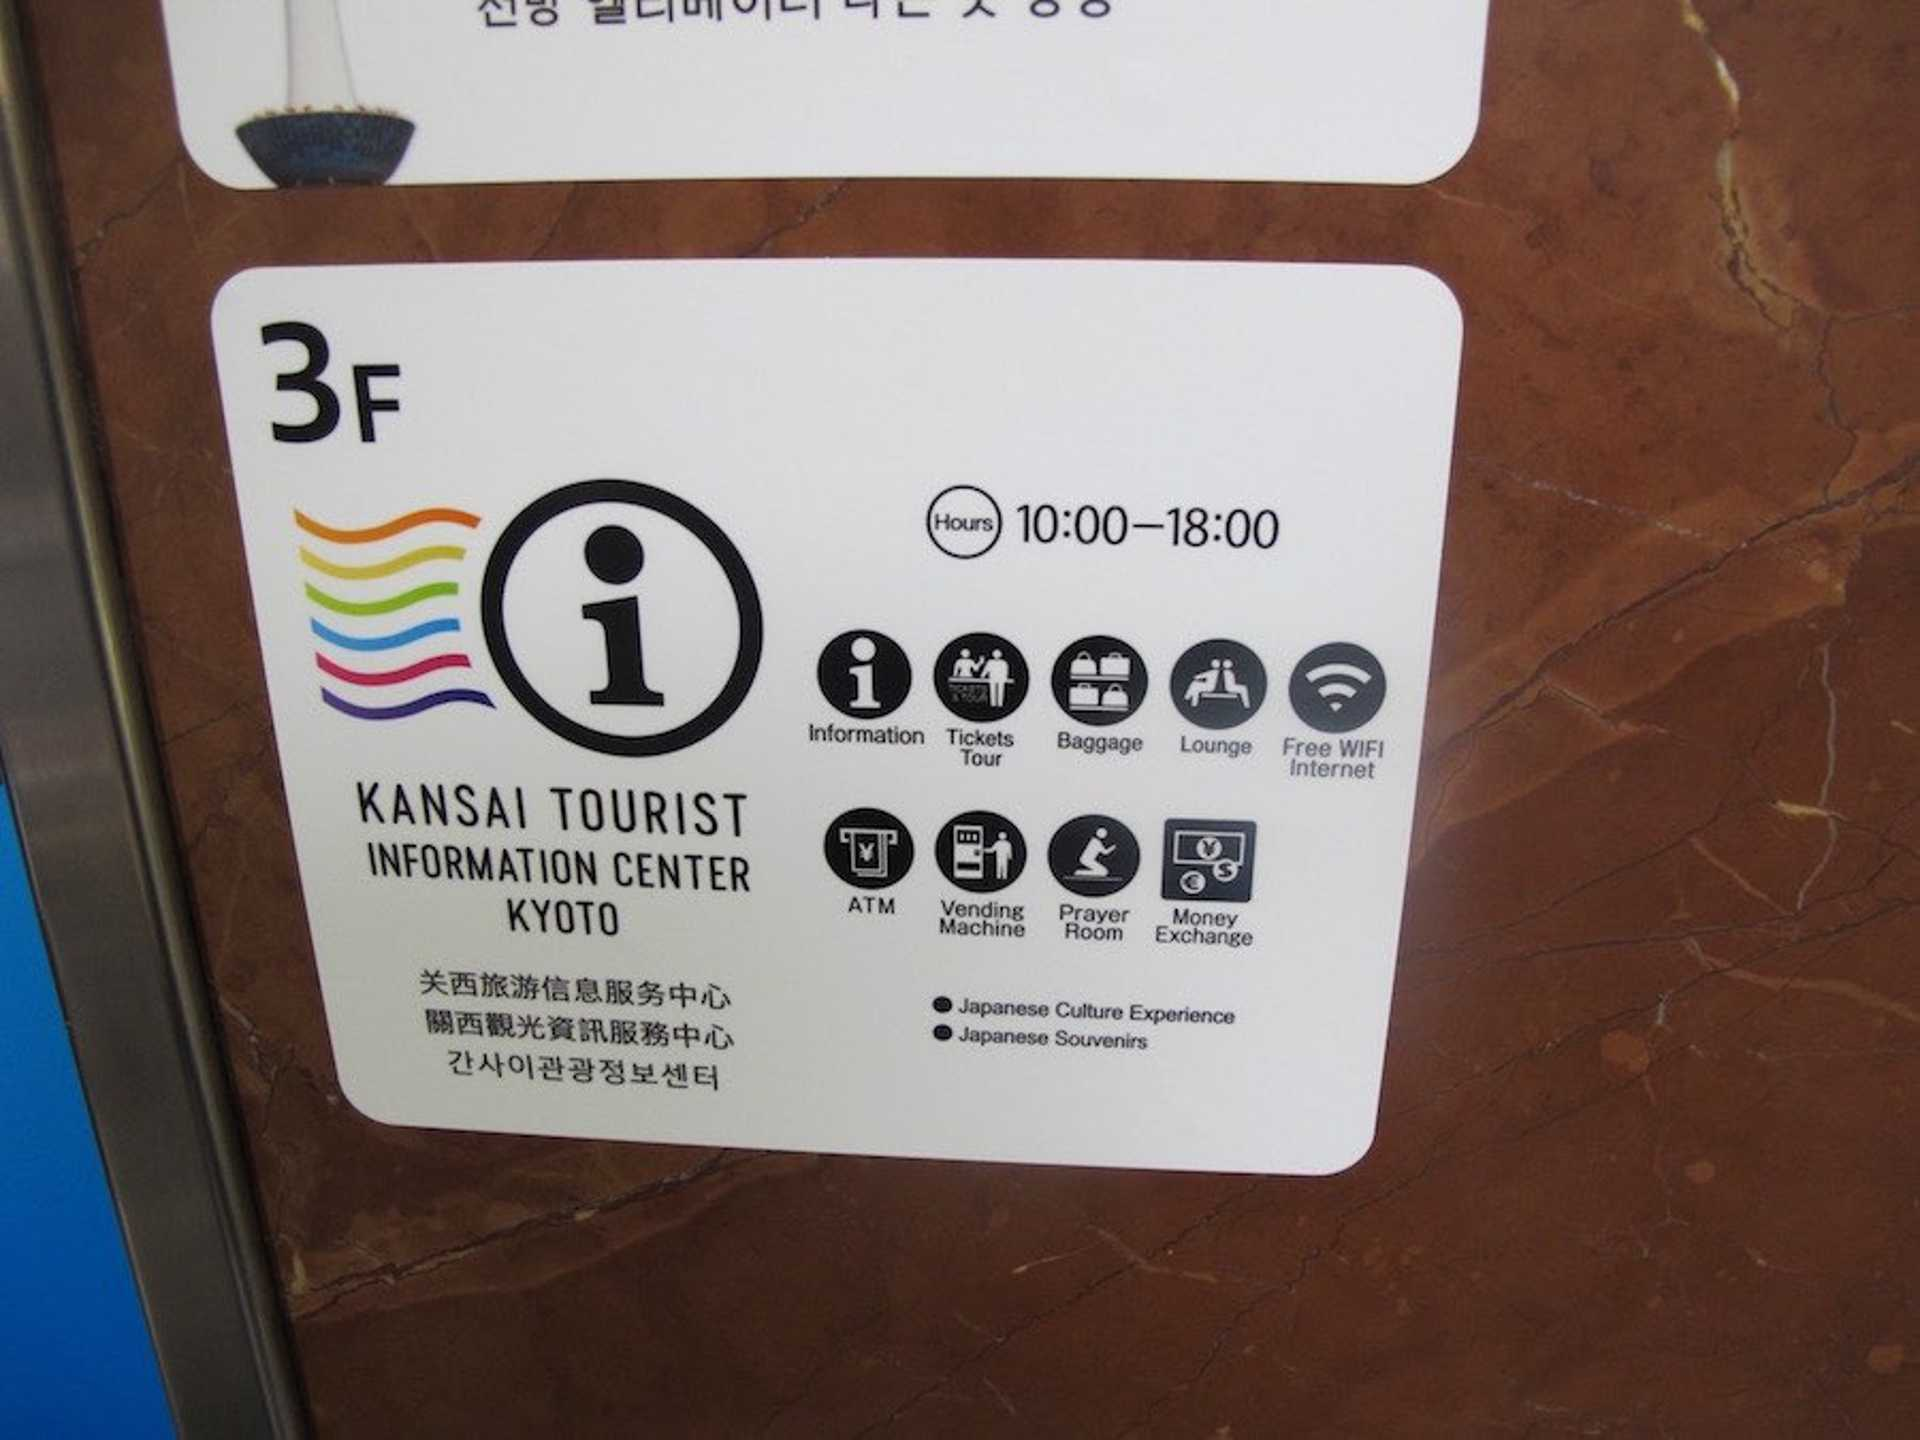 First, take the elevator to the 3rd floor, where you will find the Kansai Tourist Information Centre.